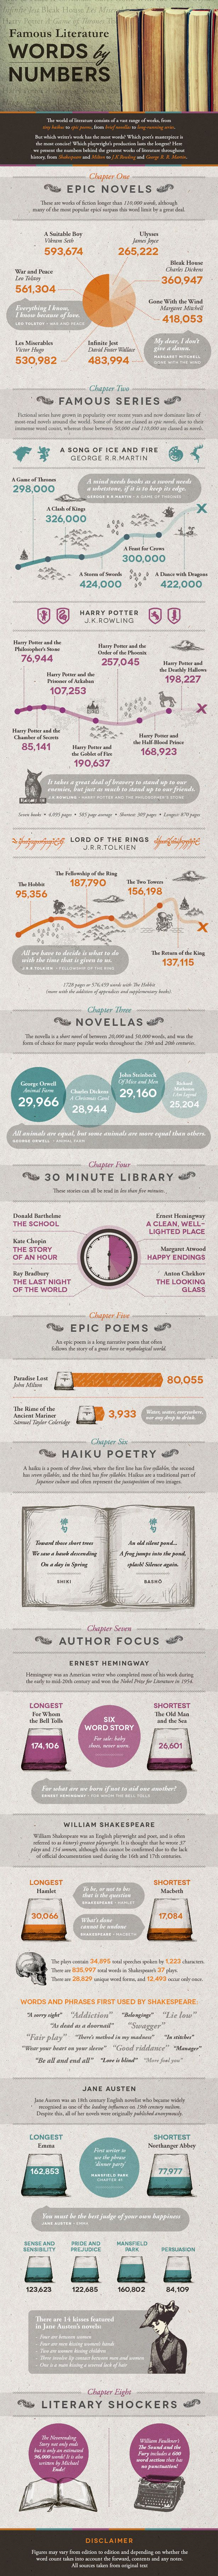 Word Counts Of Histories Most Famous Books. I wonder whether they took the original ones into account when comparing non-English titles.#Kobo #ReadOn